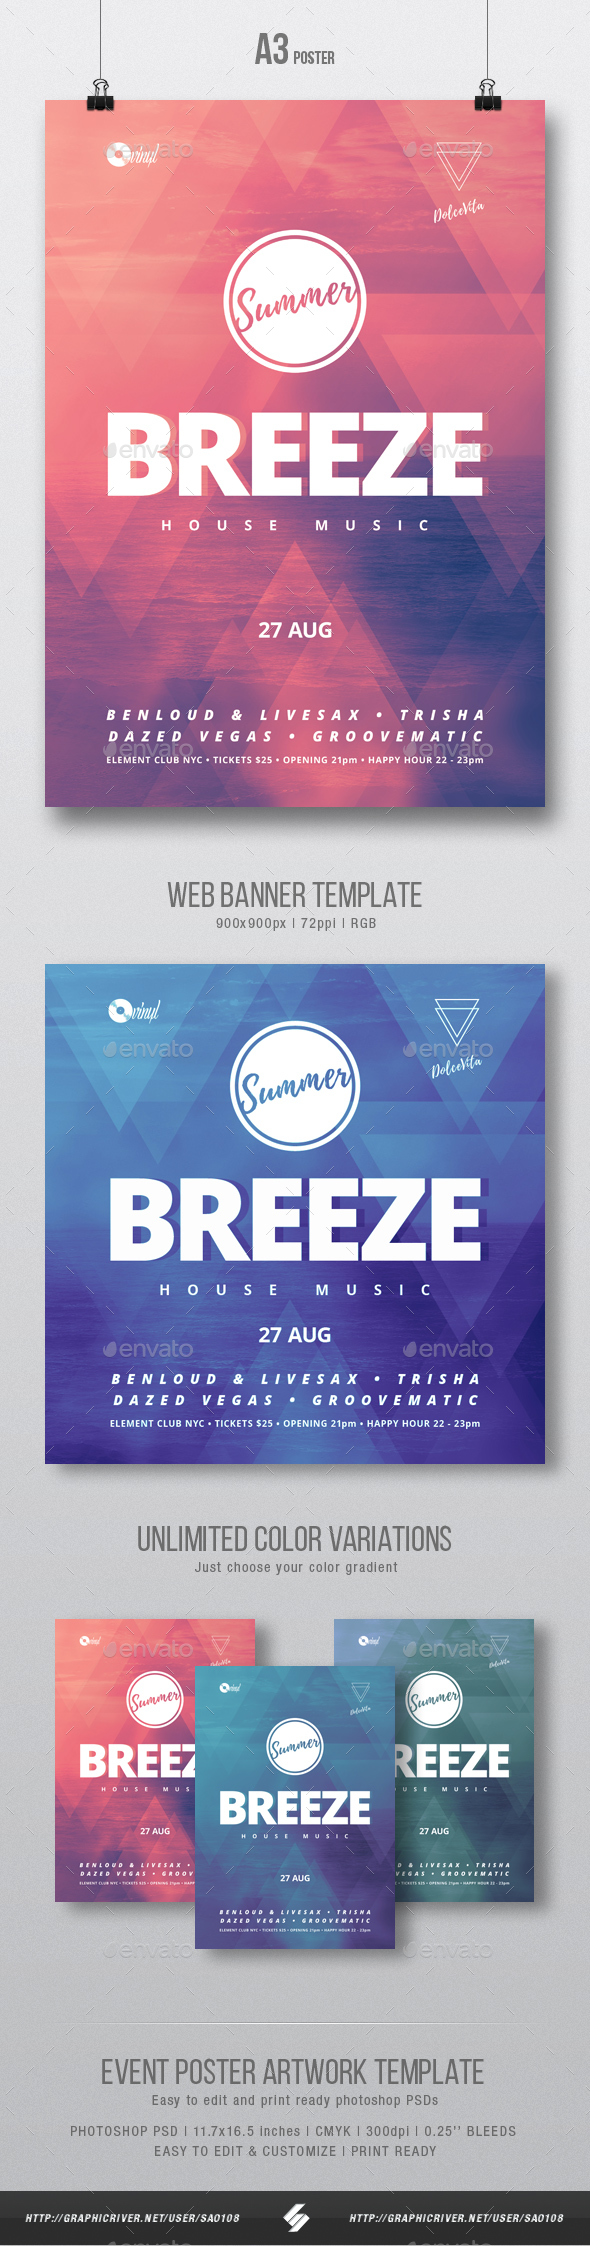 Summer Breeze - House Music Party Flyer / Poster Template A3 - Clubs & Parties Events